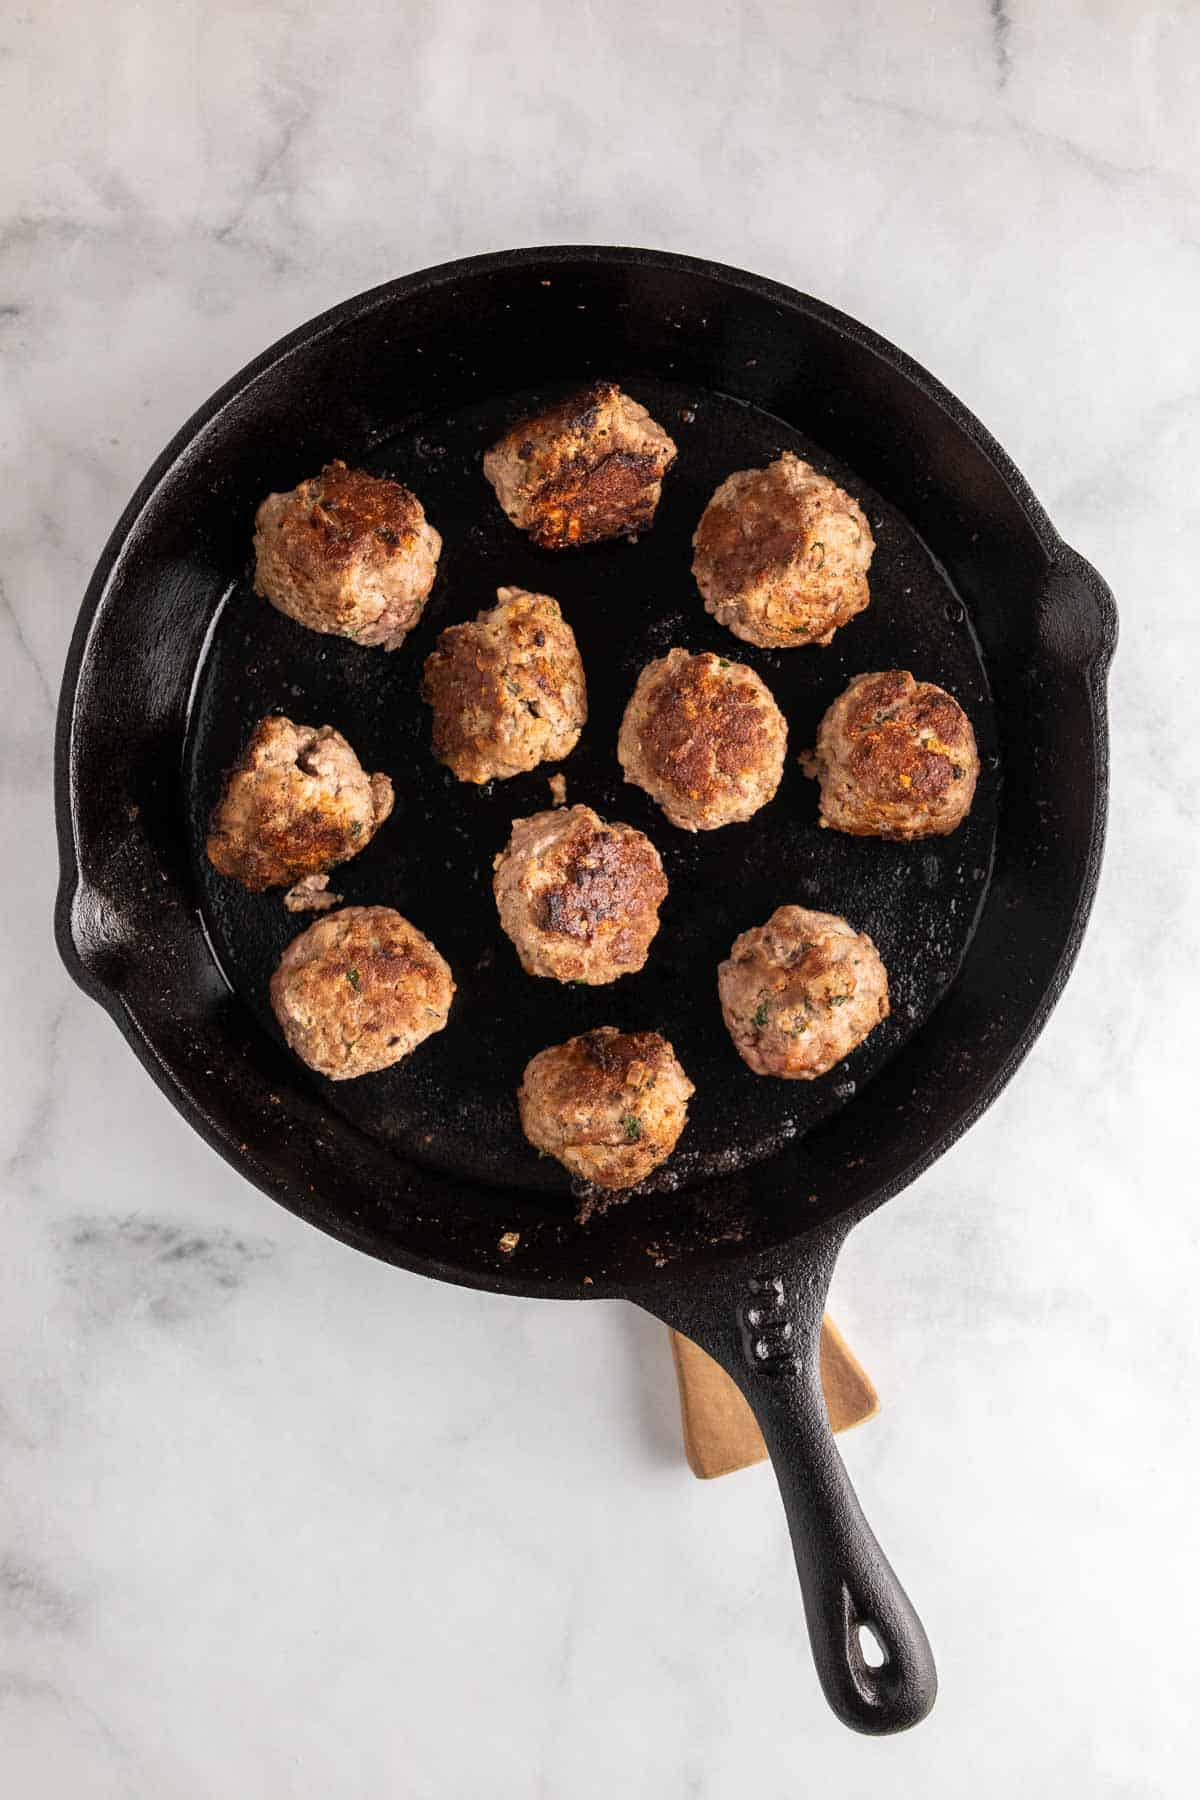 Cooked meatballs in cast iron skillet